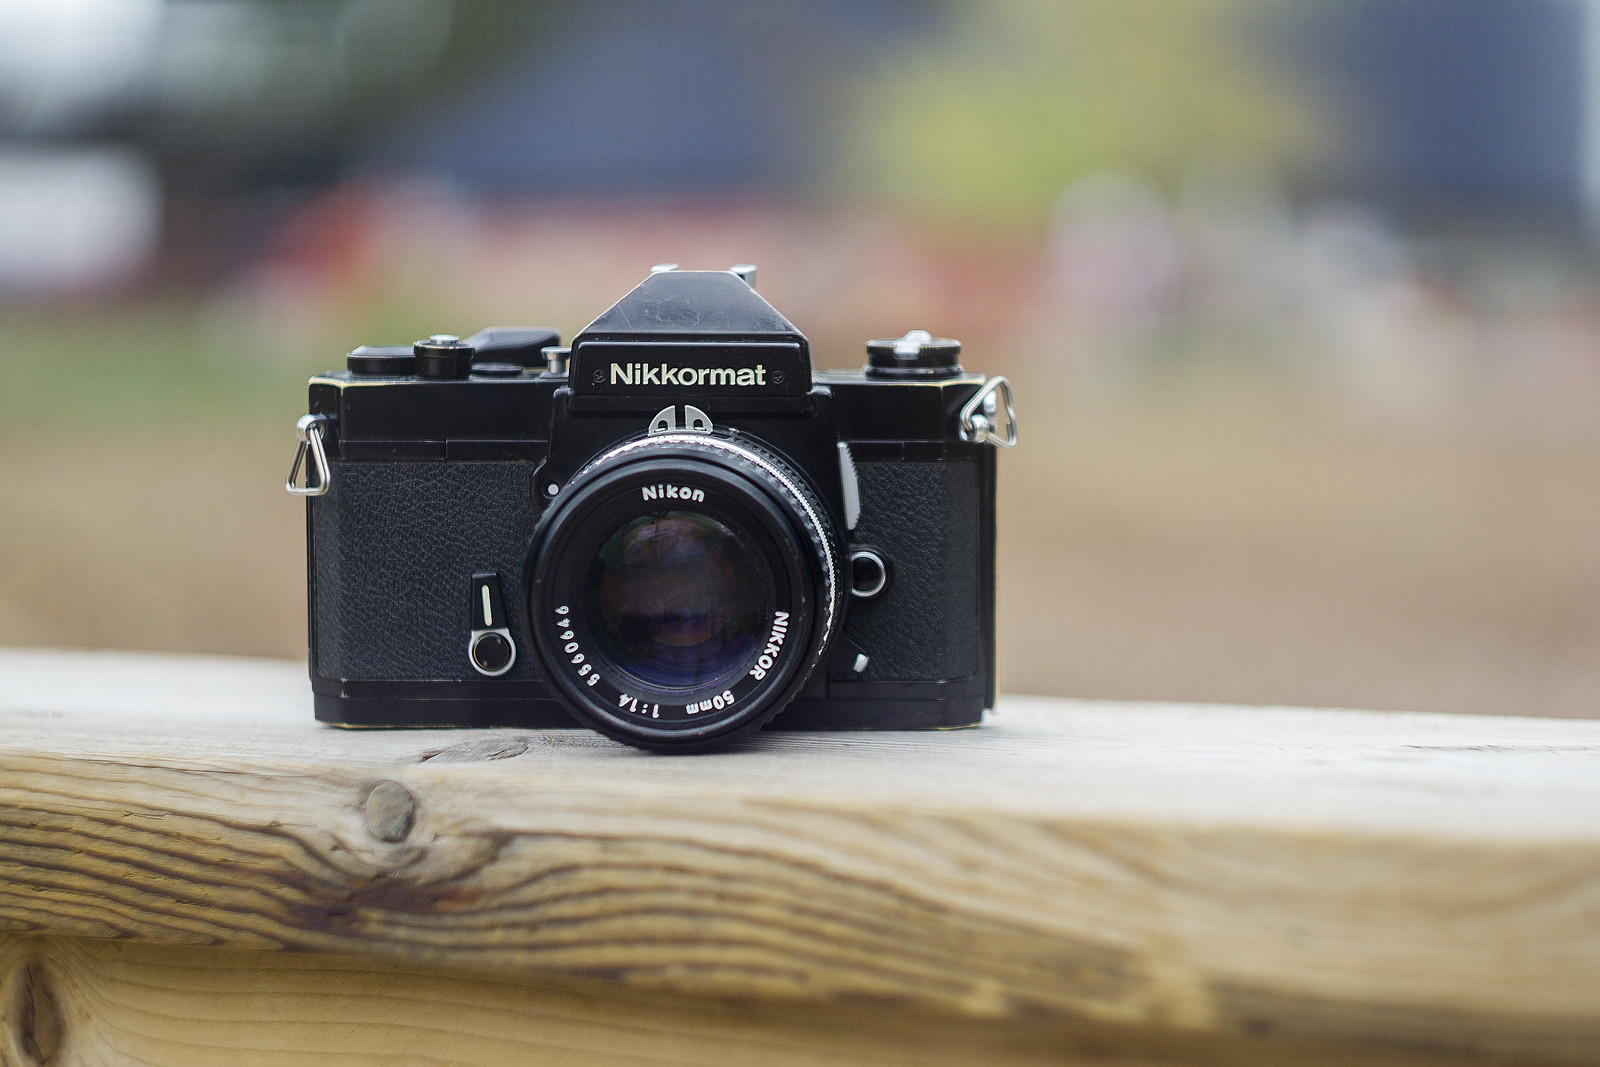 Camera Review Blog No. 46 - Nikon Nikkormat FT3